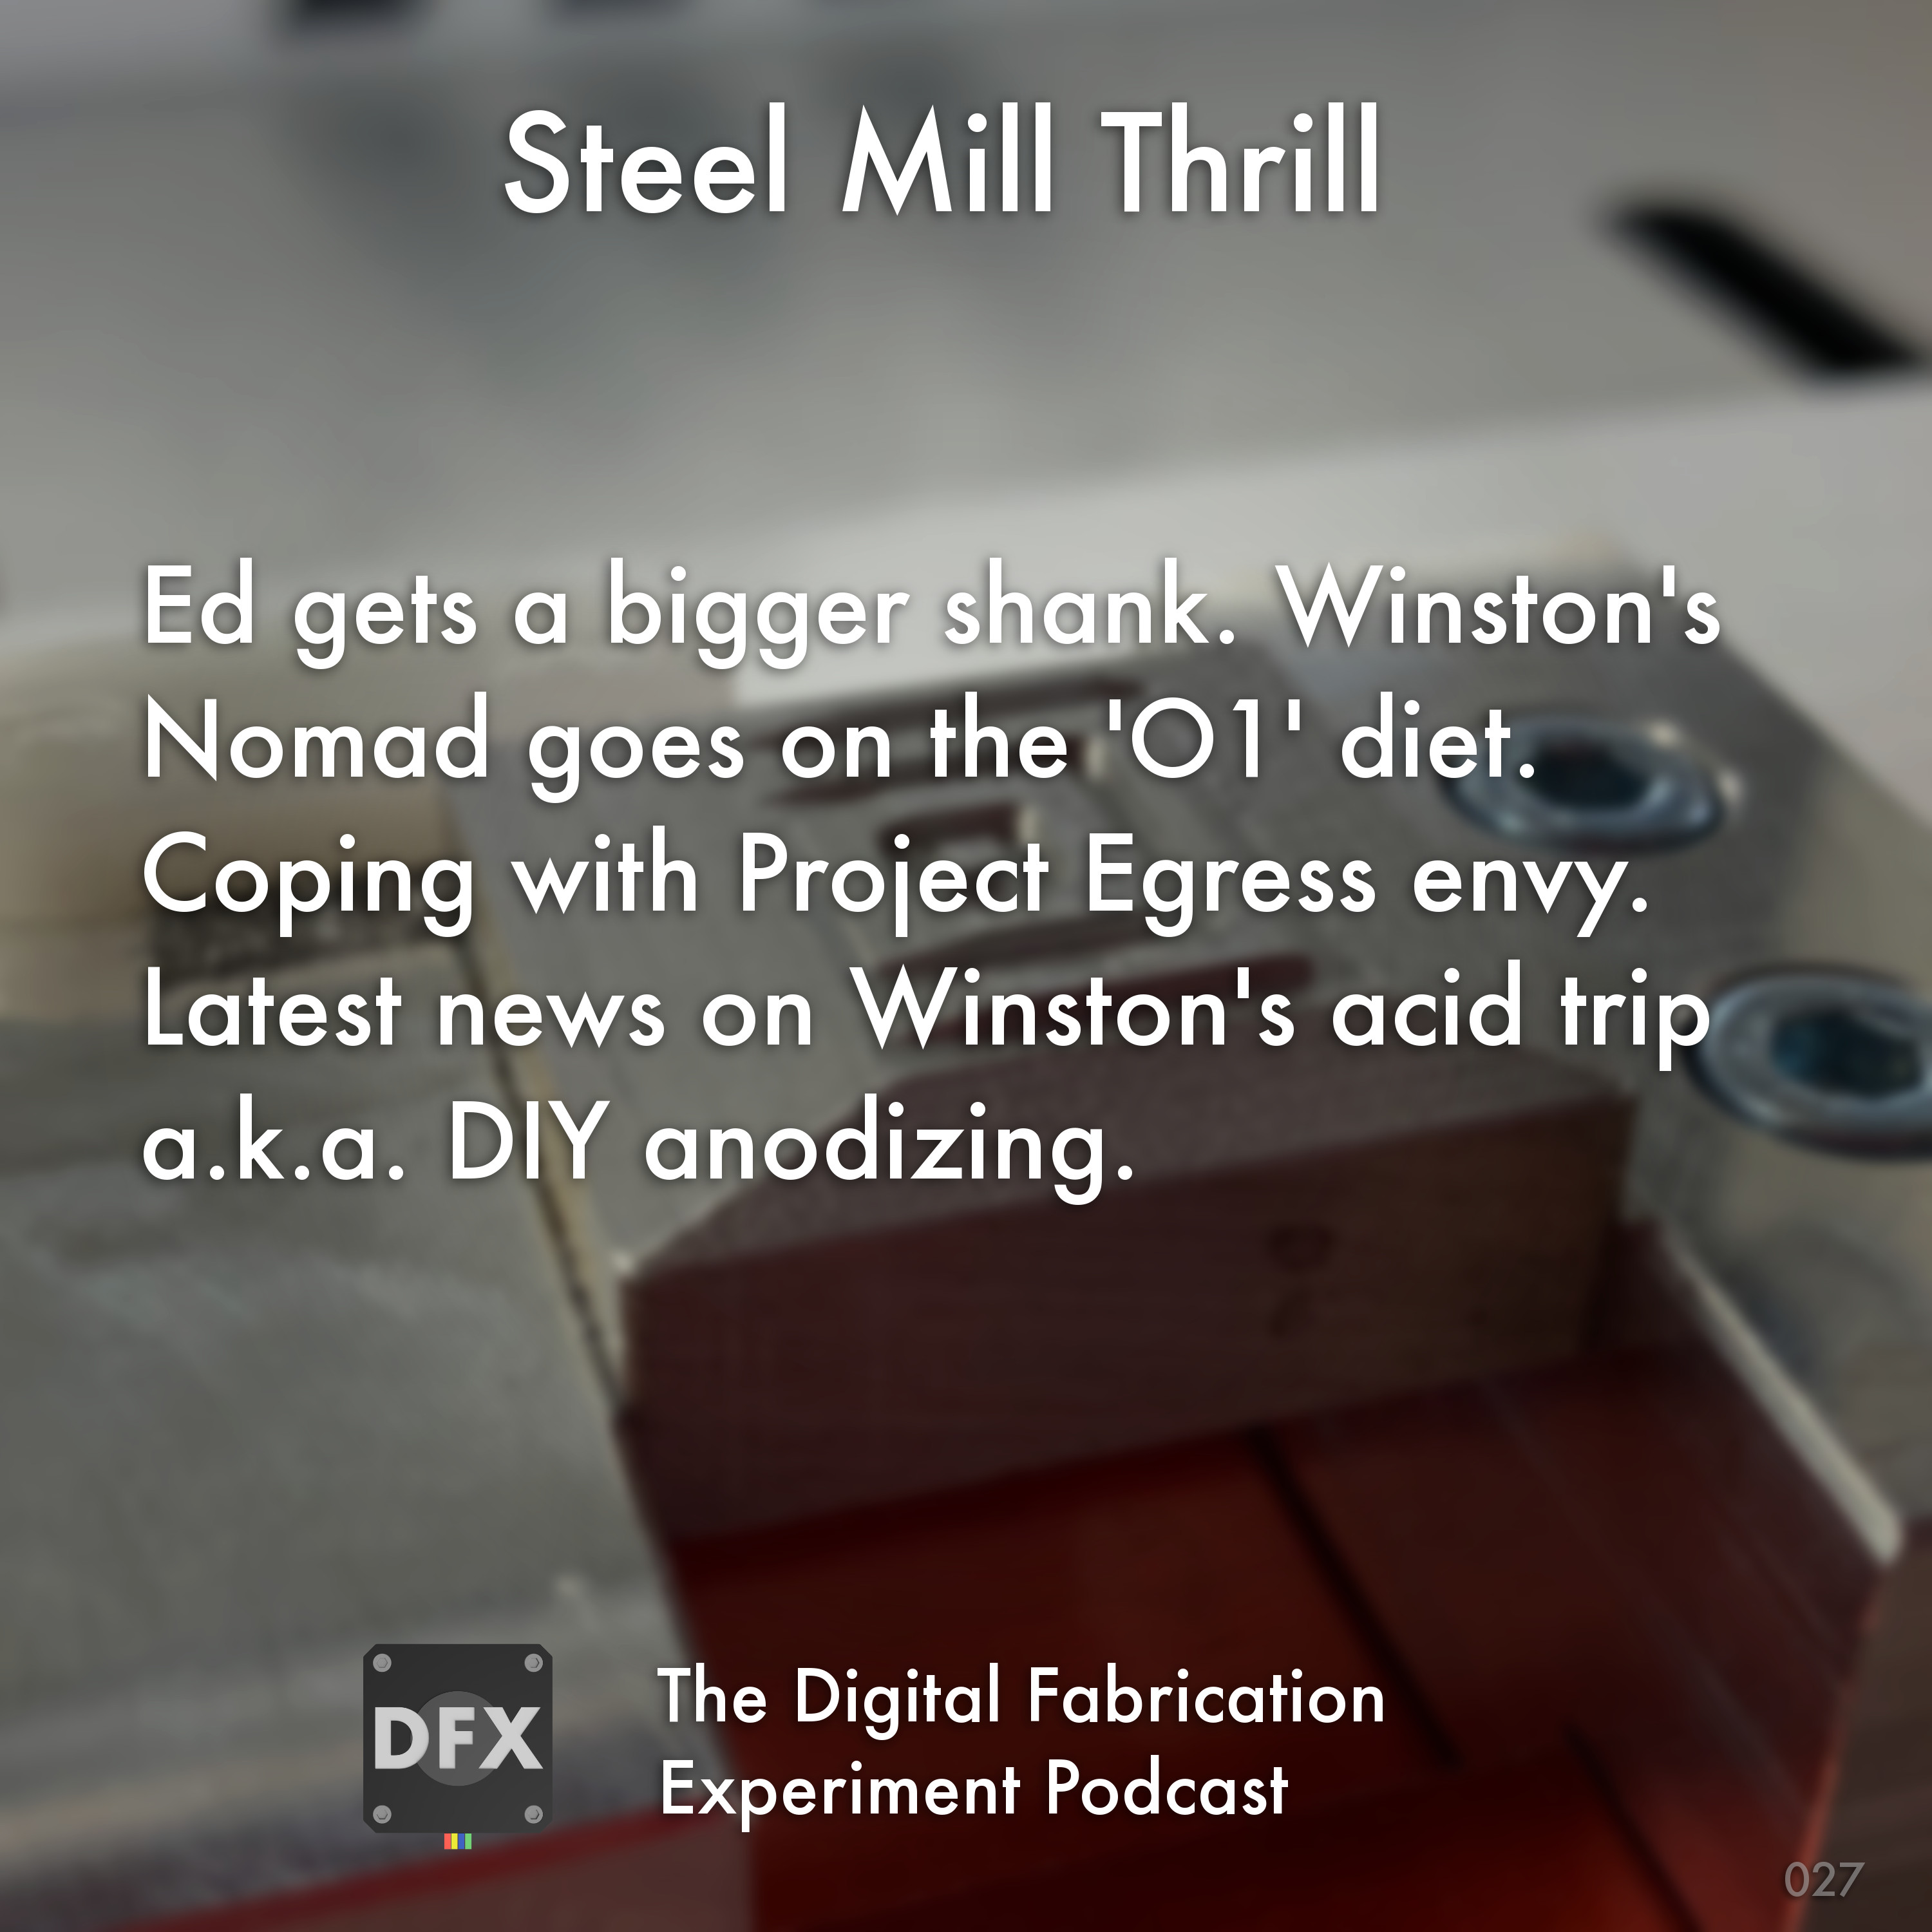 The Digital Fabrication Experiment Podcast | Listen to the